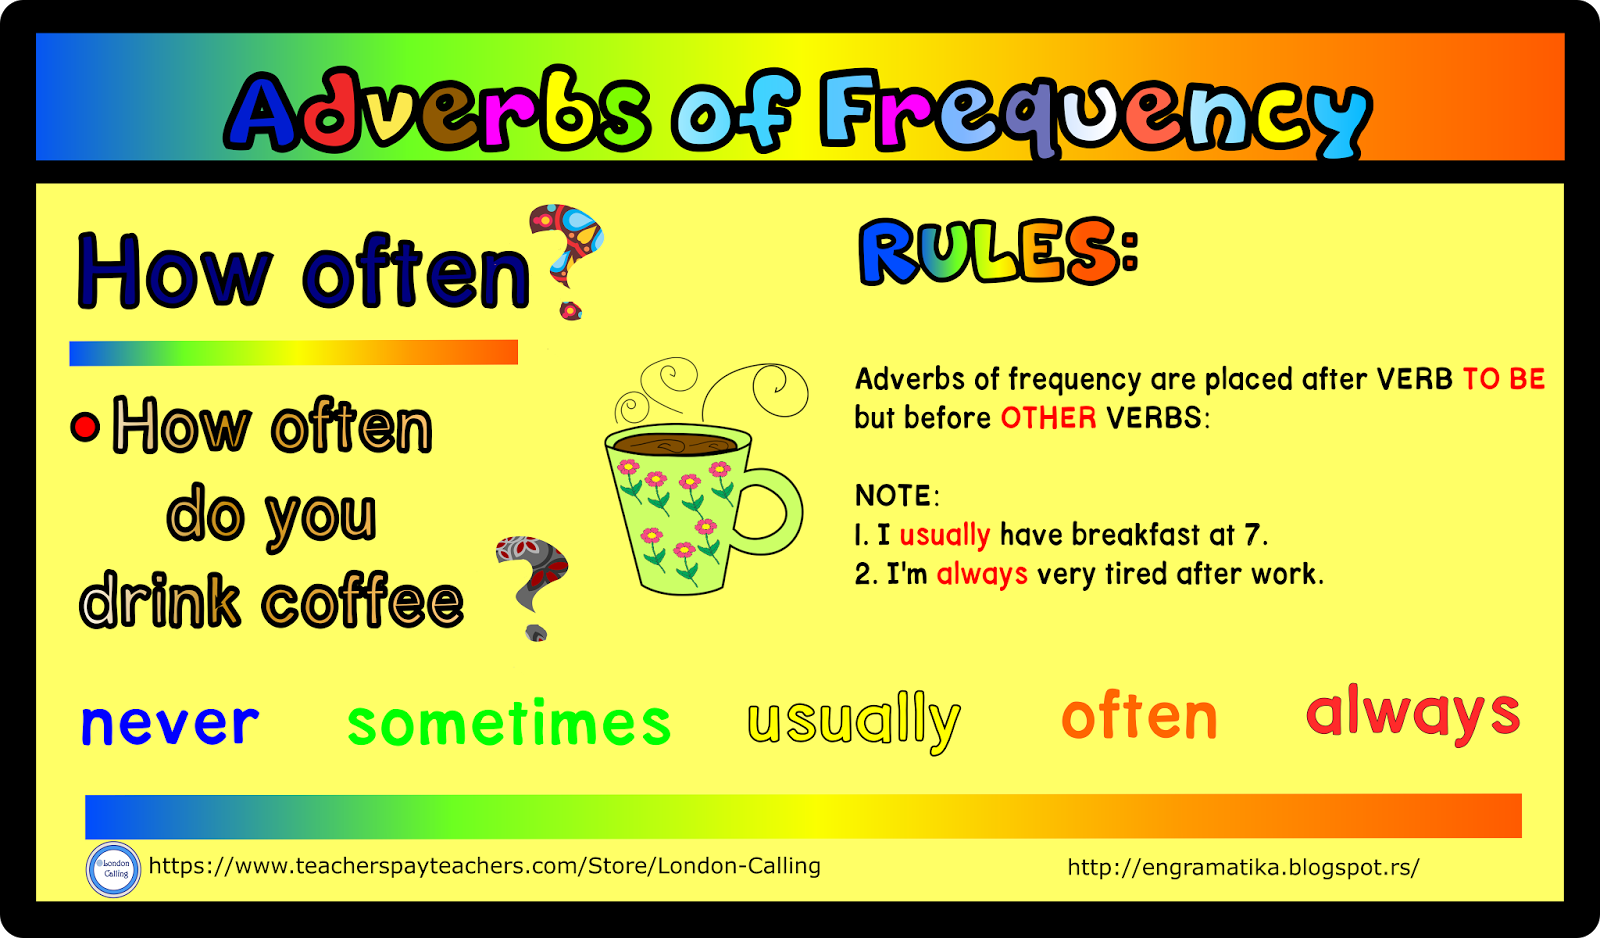 English Grammar Adverbs Of Frequency Poster Aprender Ingles Ingles [ 938 x 1600 Pixel ]